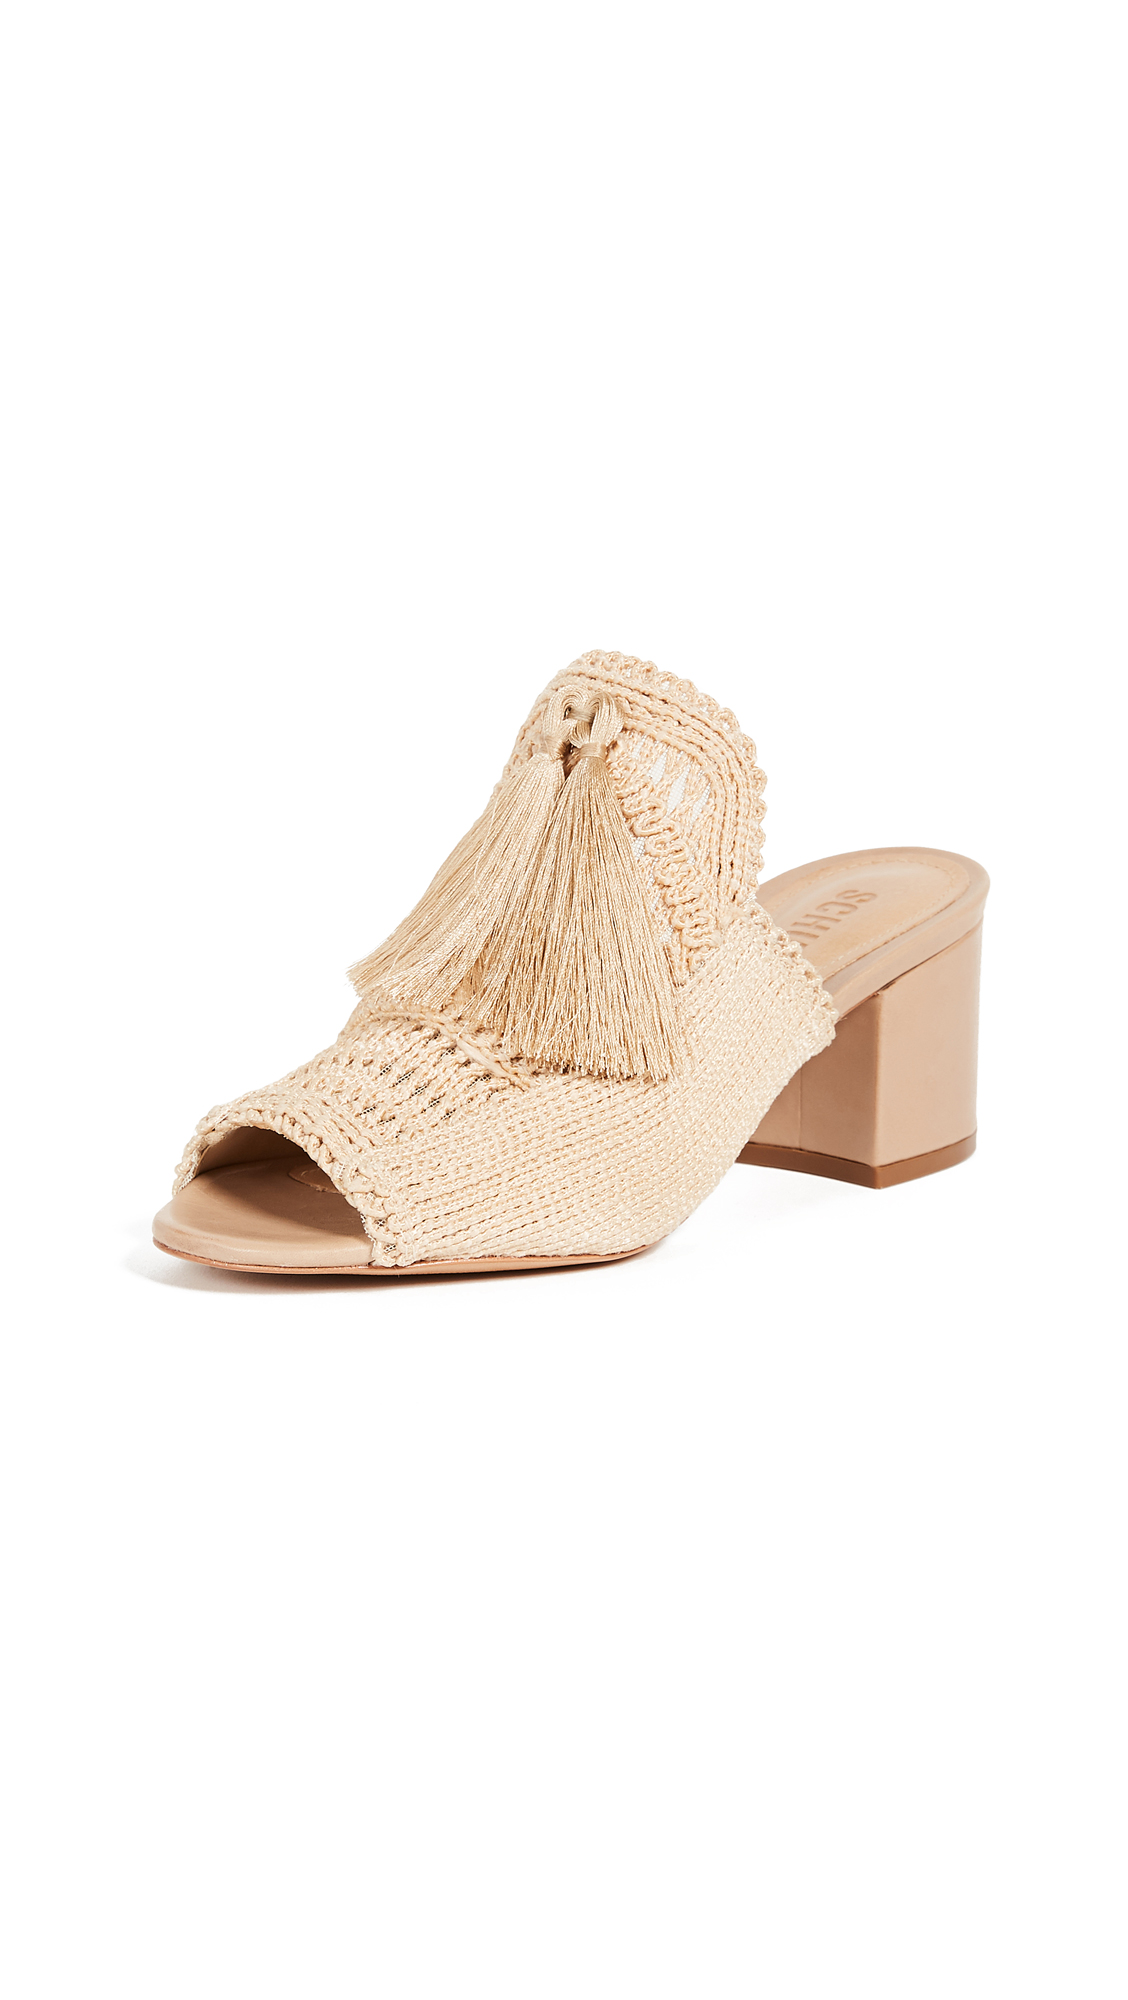 Schutz Moonie Block Heel Mules - Natural